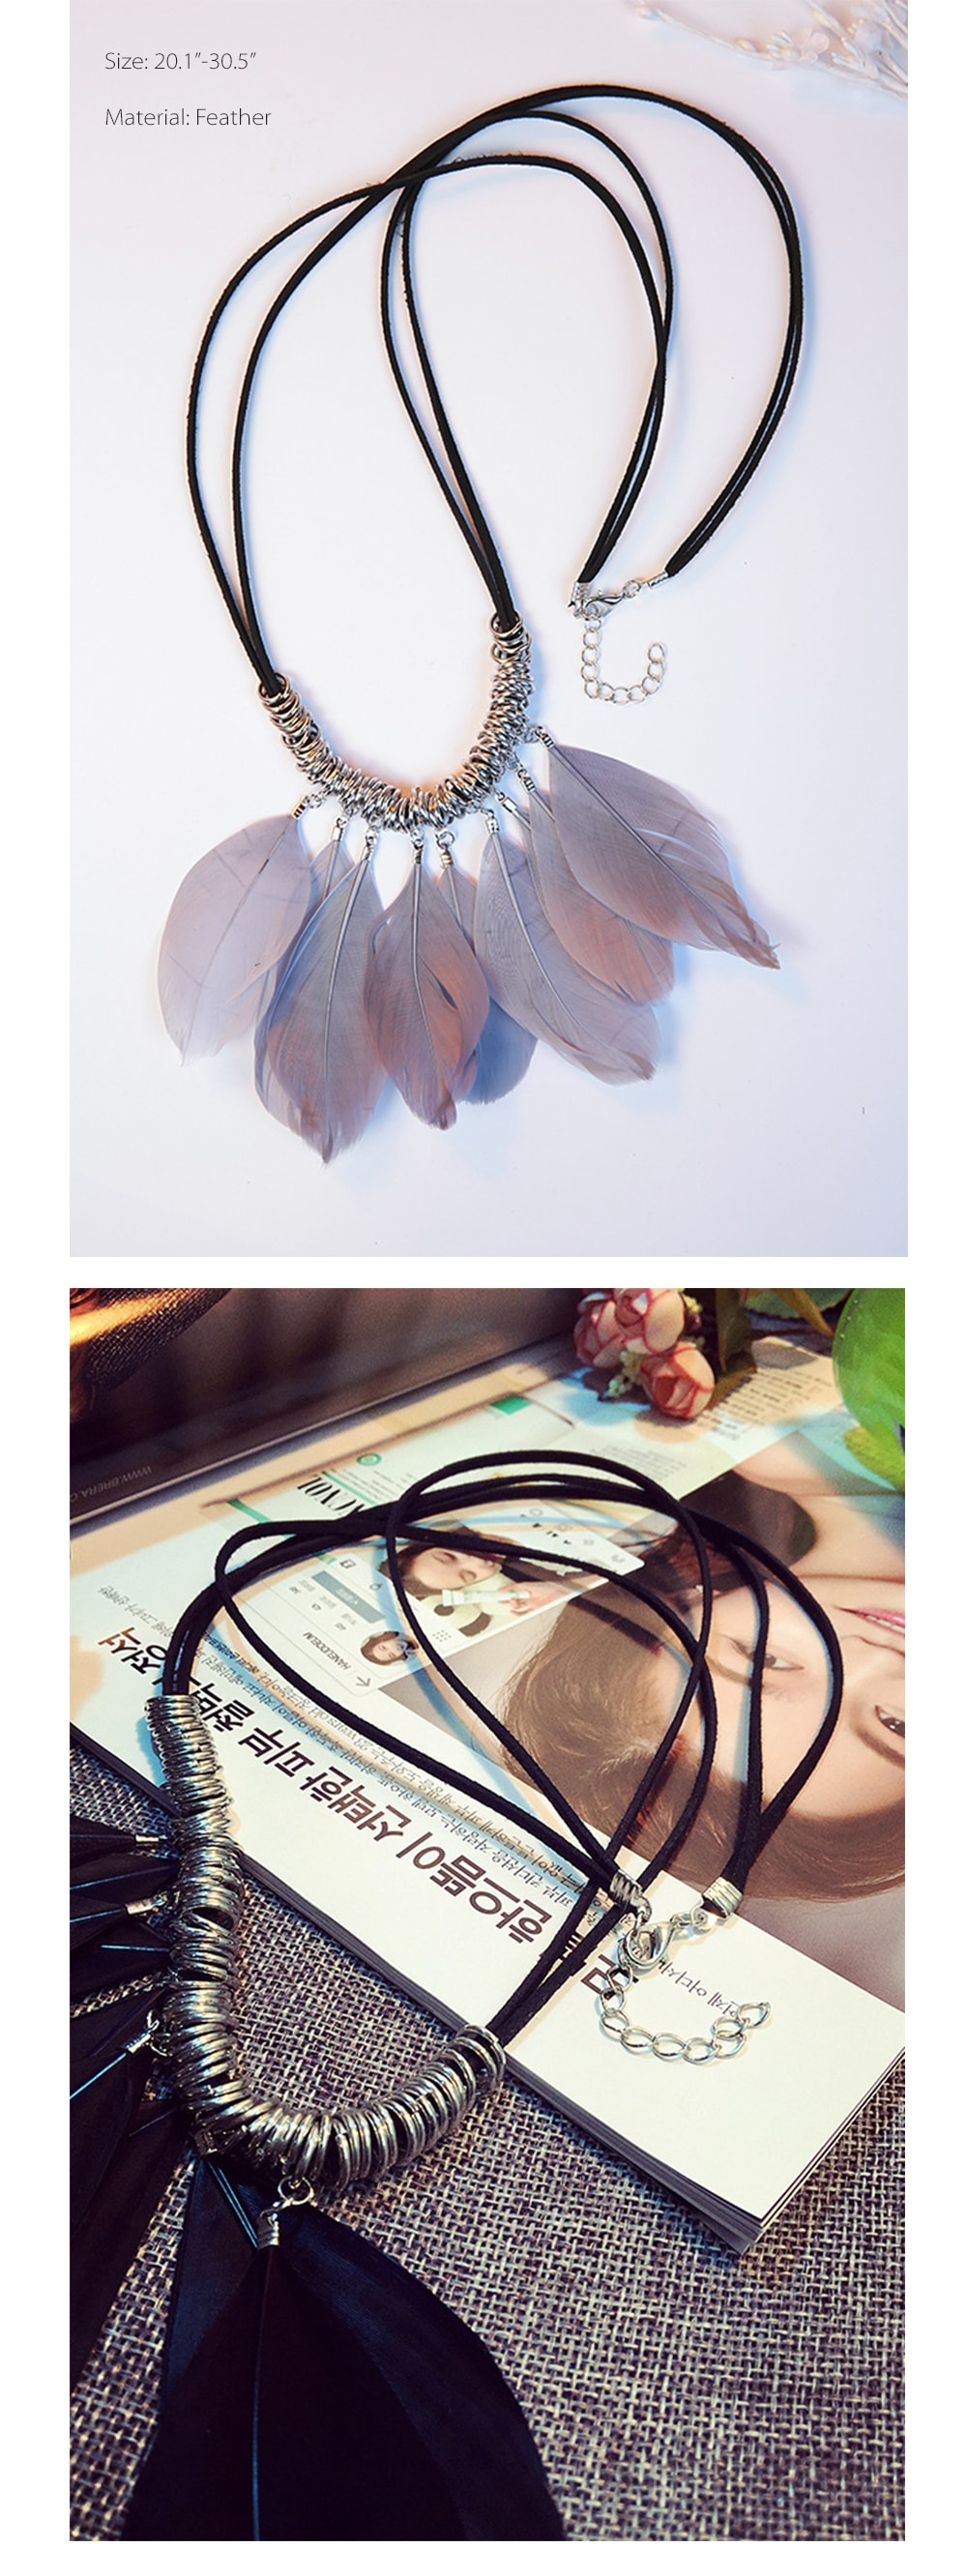 Feather Pendant Necklace Unique Design